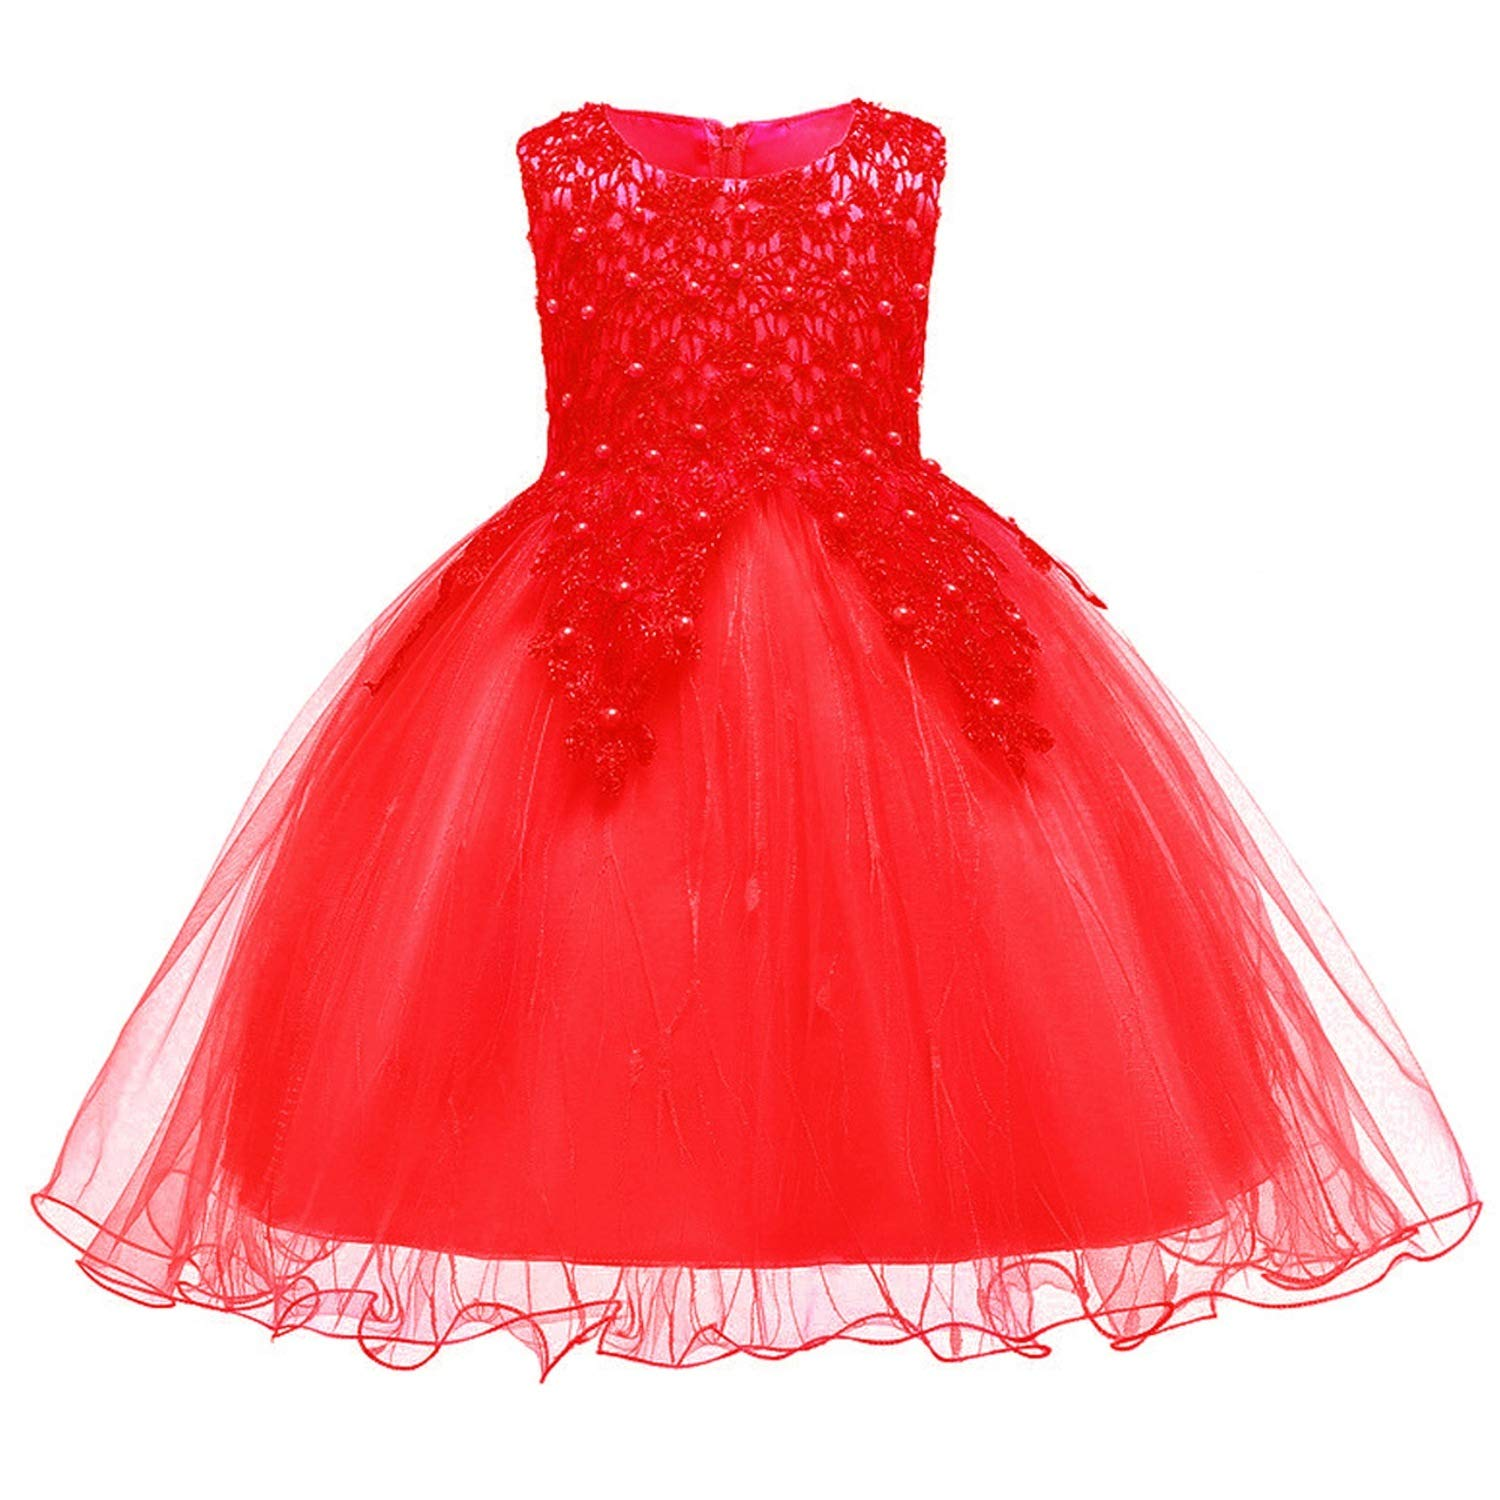 Kids Dresses for Girls Gold Thread Embroidery Elegant Party Dress for Girls Wedding Dress for Toddler Girls Thankgiving Clothes,Red,3T